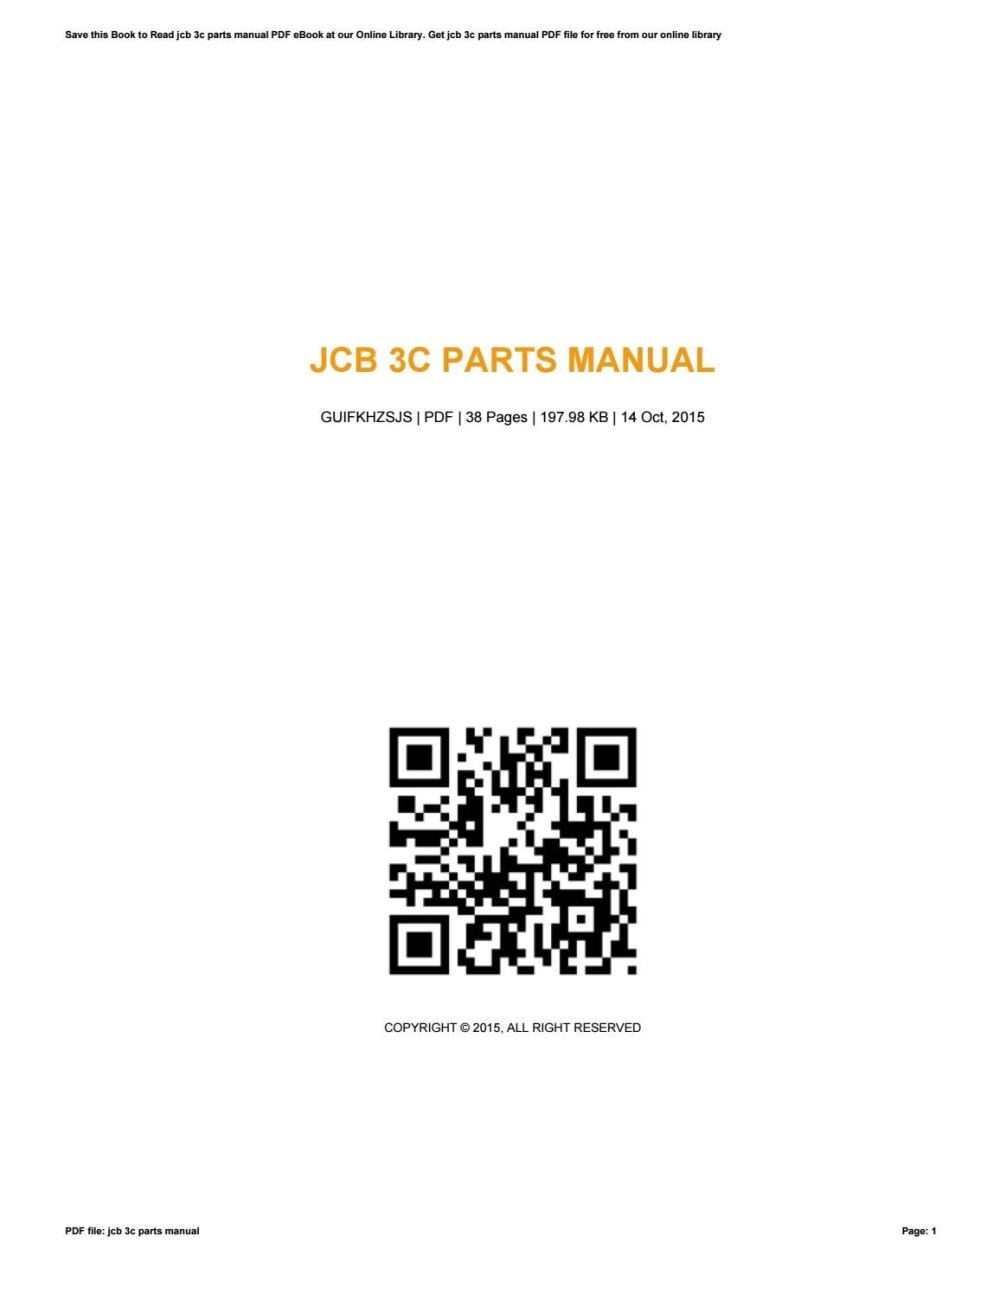 medium resolution of jcb online part manual